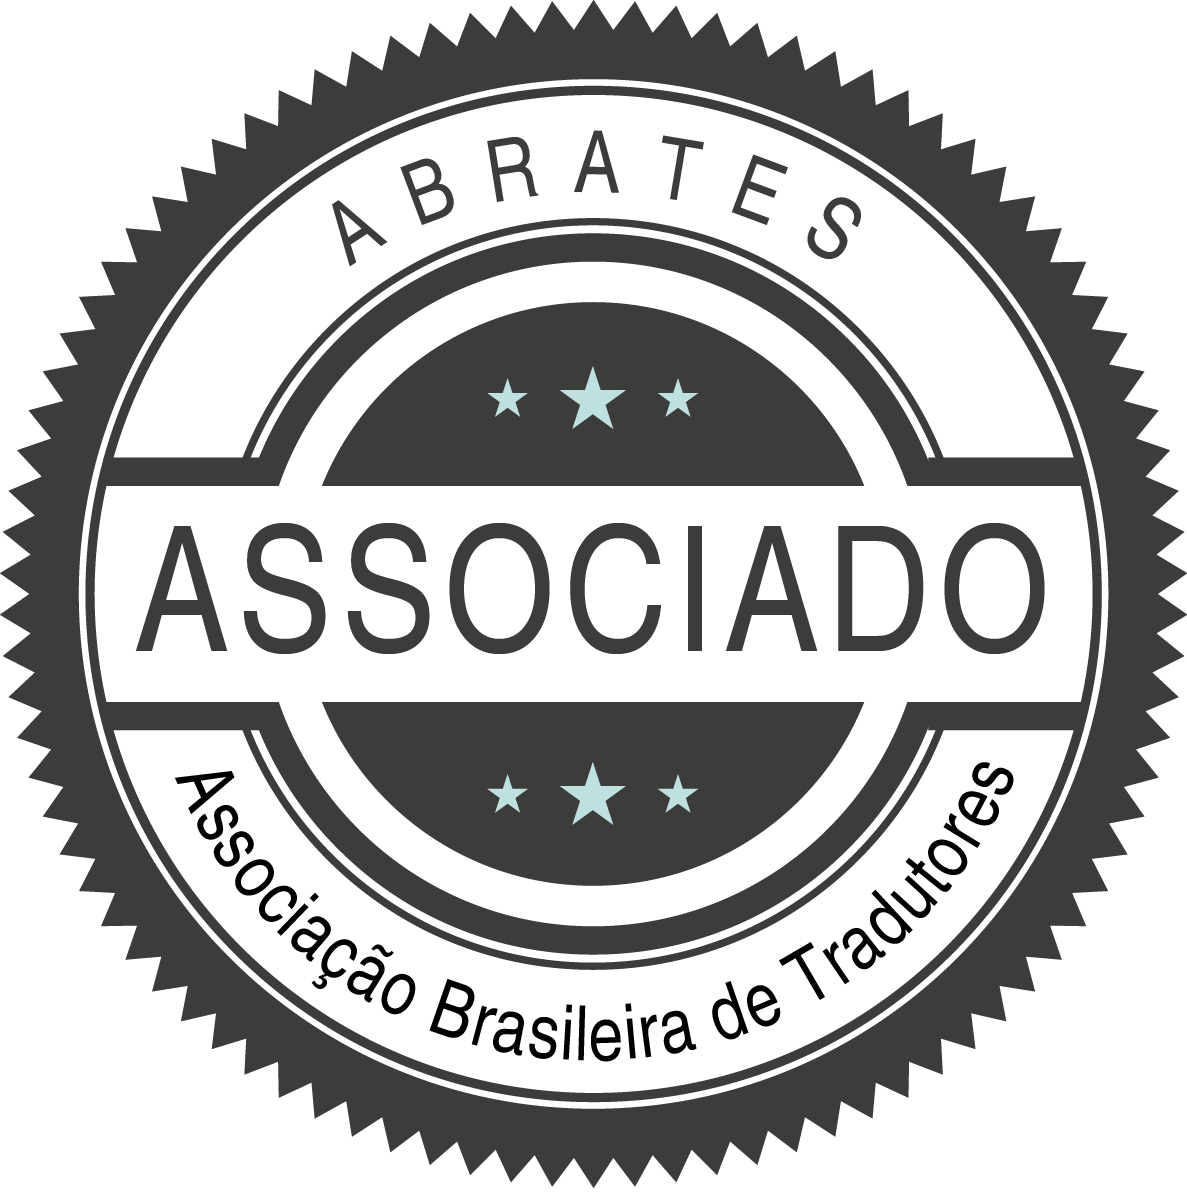 Selo Associado Abrates